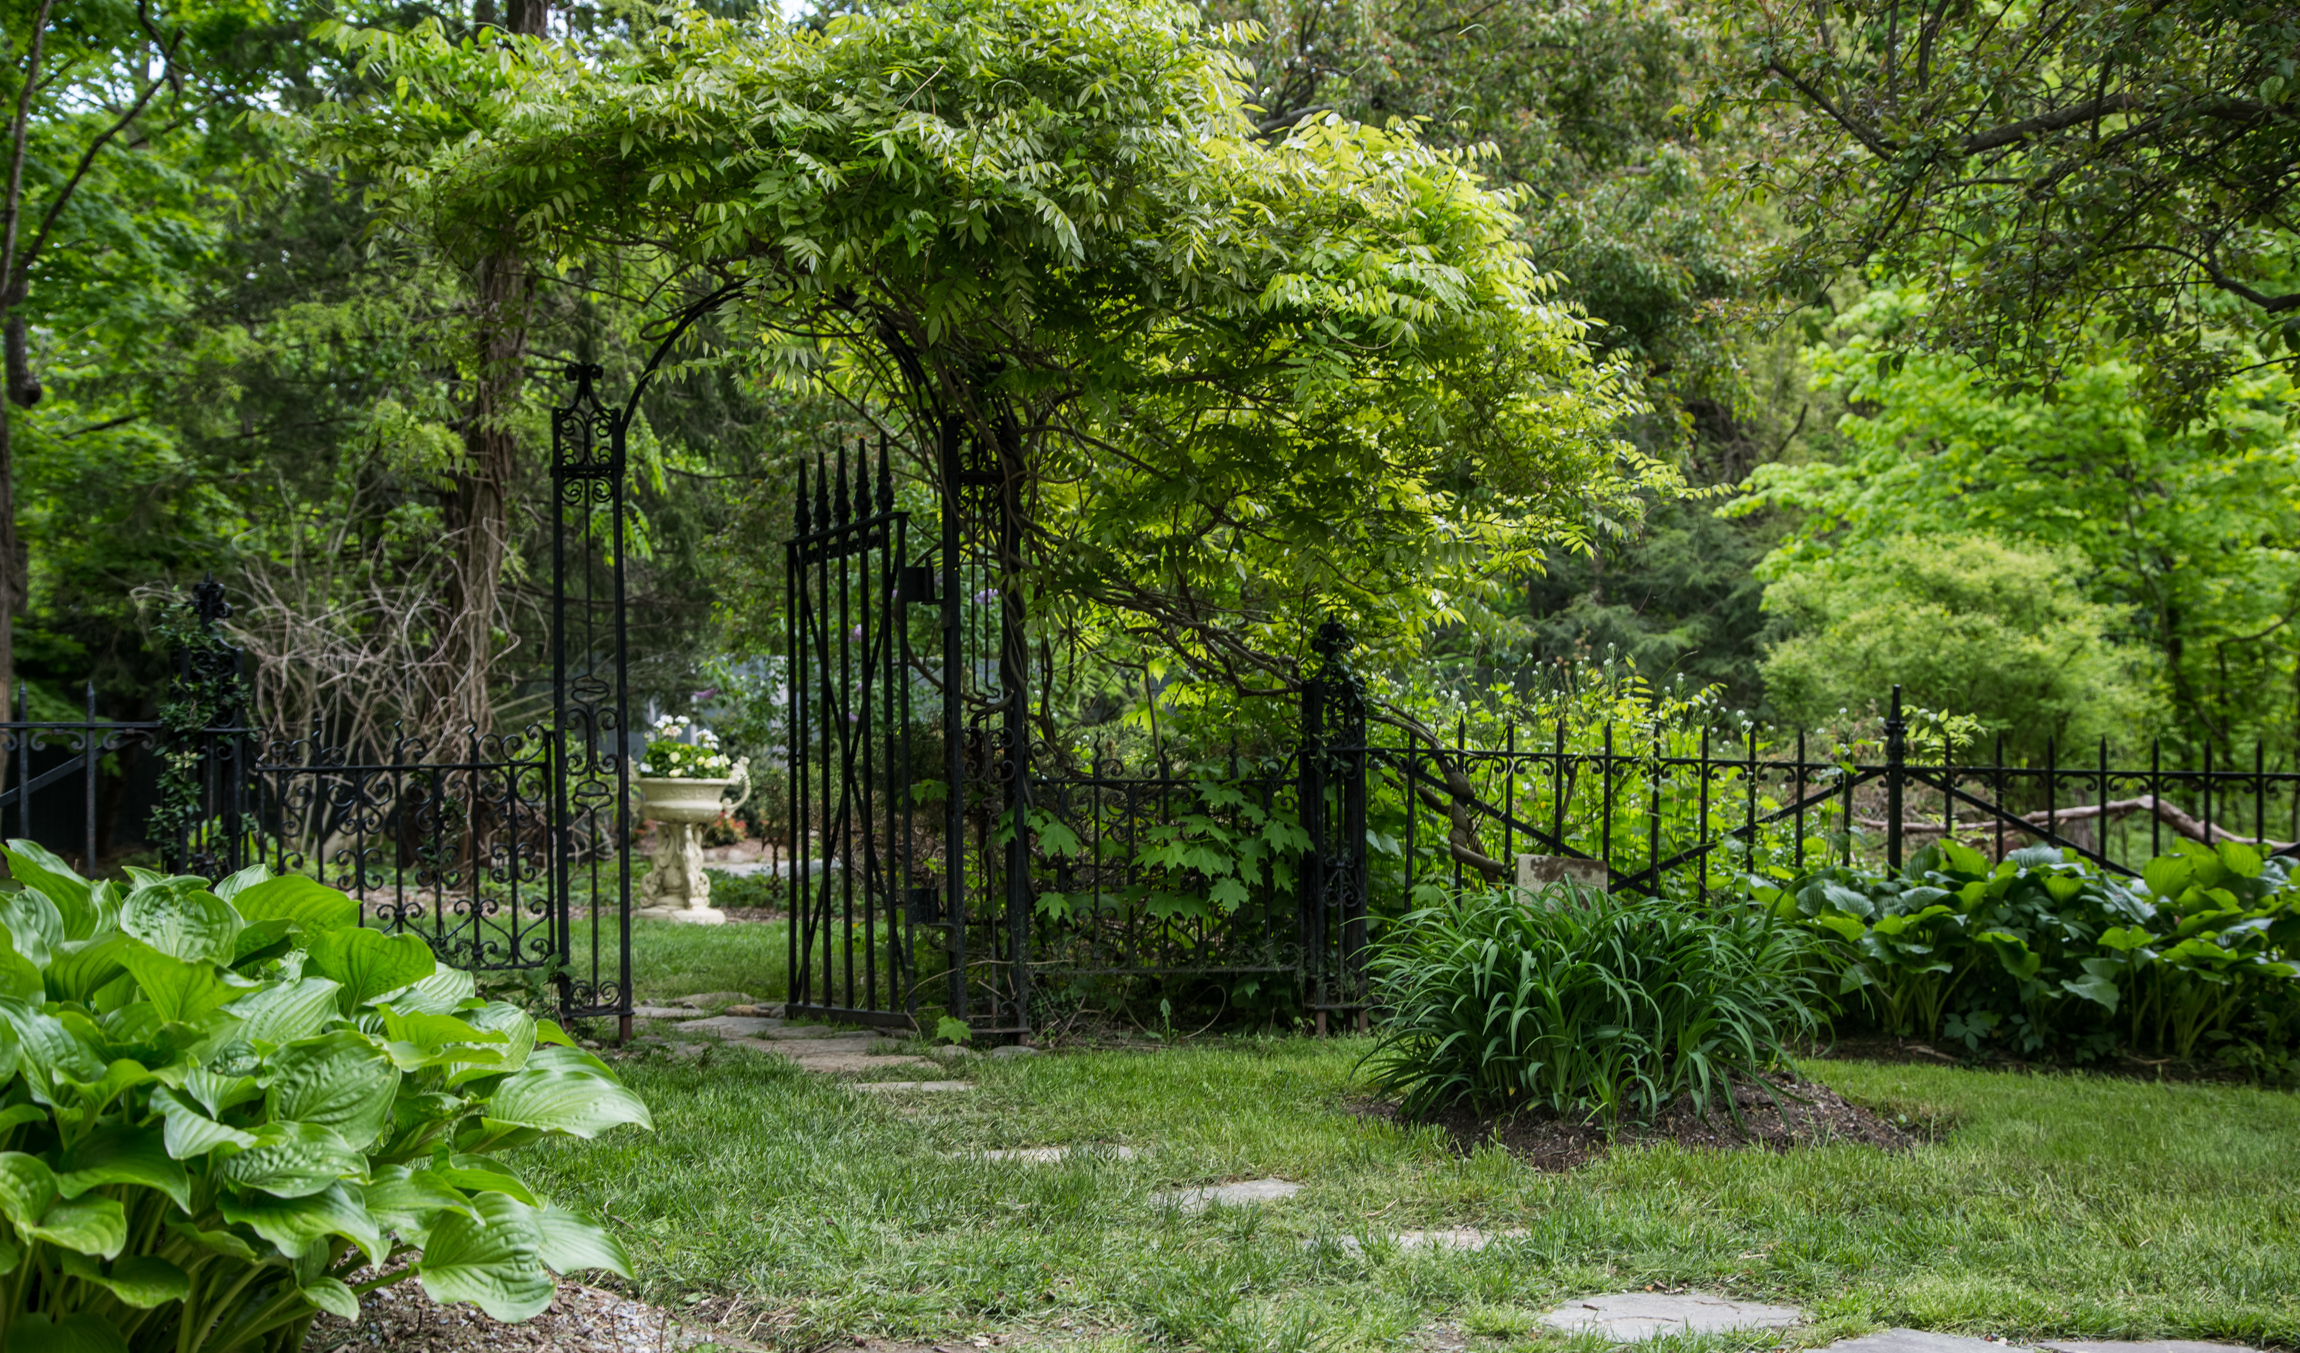 The Home Guru | Decorative Wrought Iron for Unique Art Inside and Out